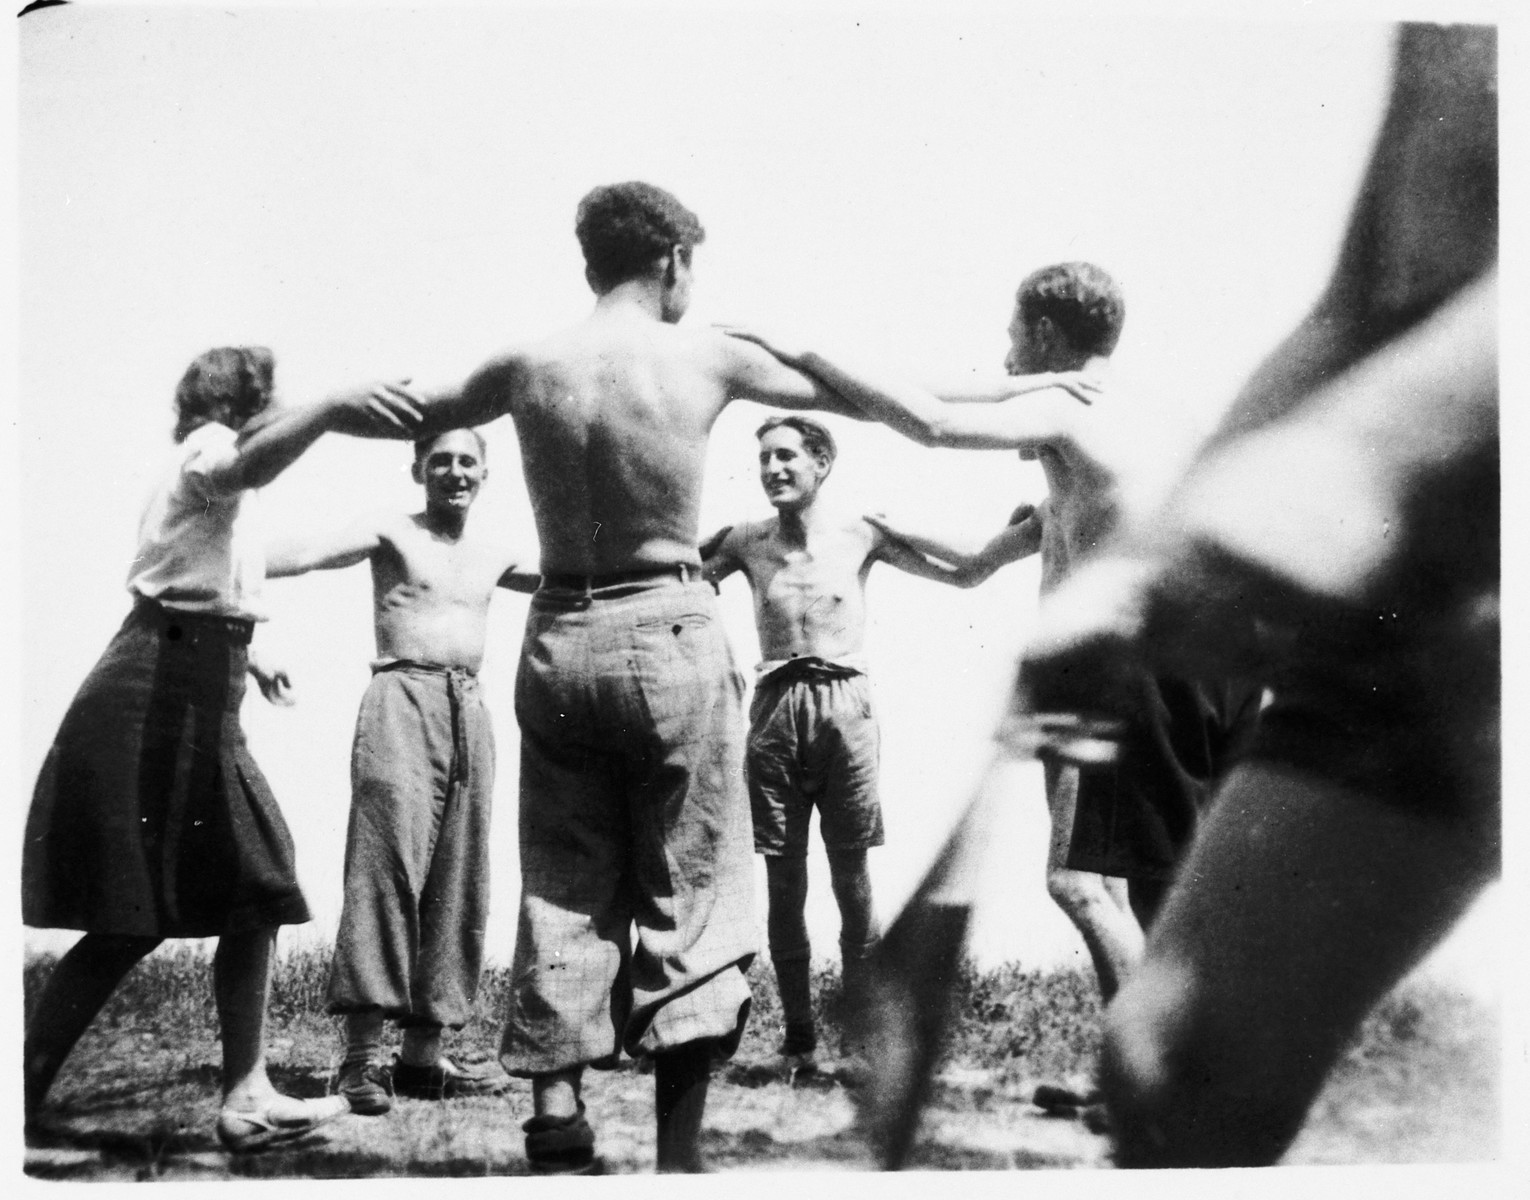 Members of Armée Juive dance a horah in their training camp in the Alps.